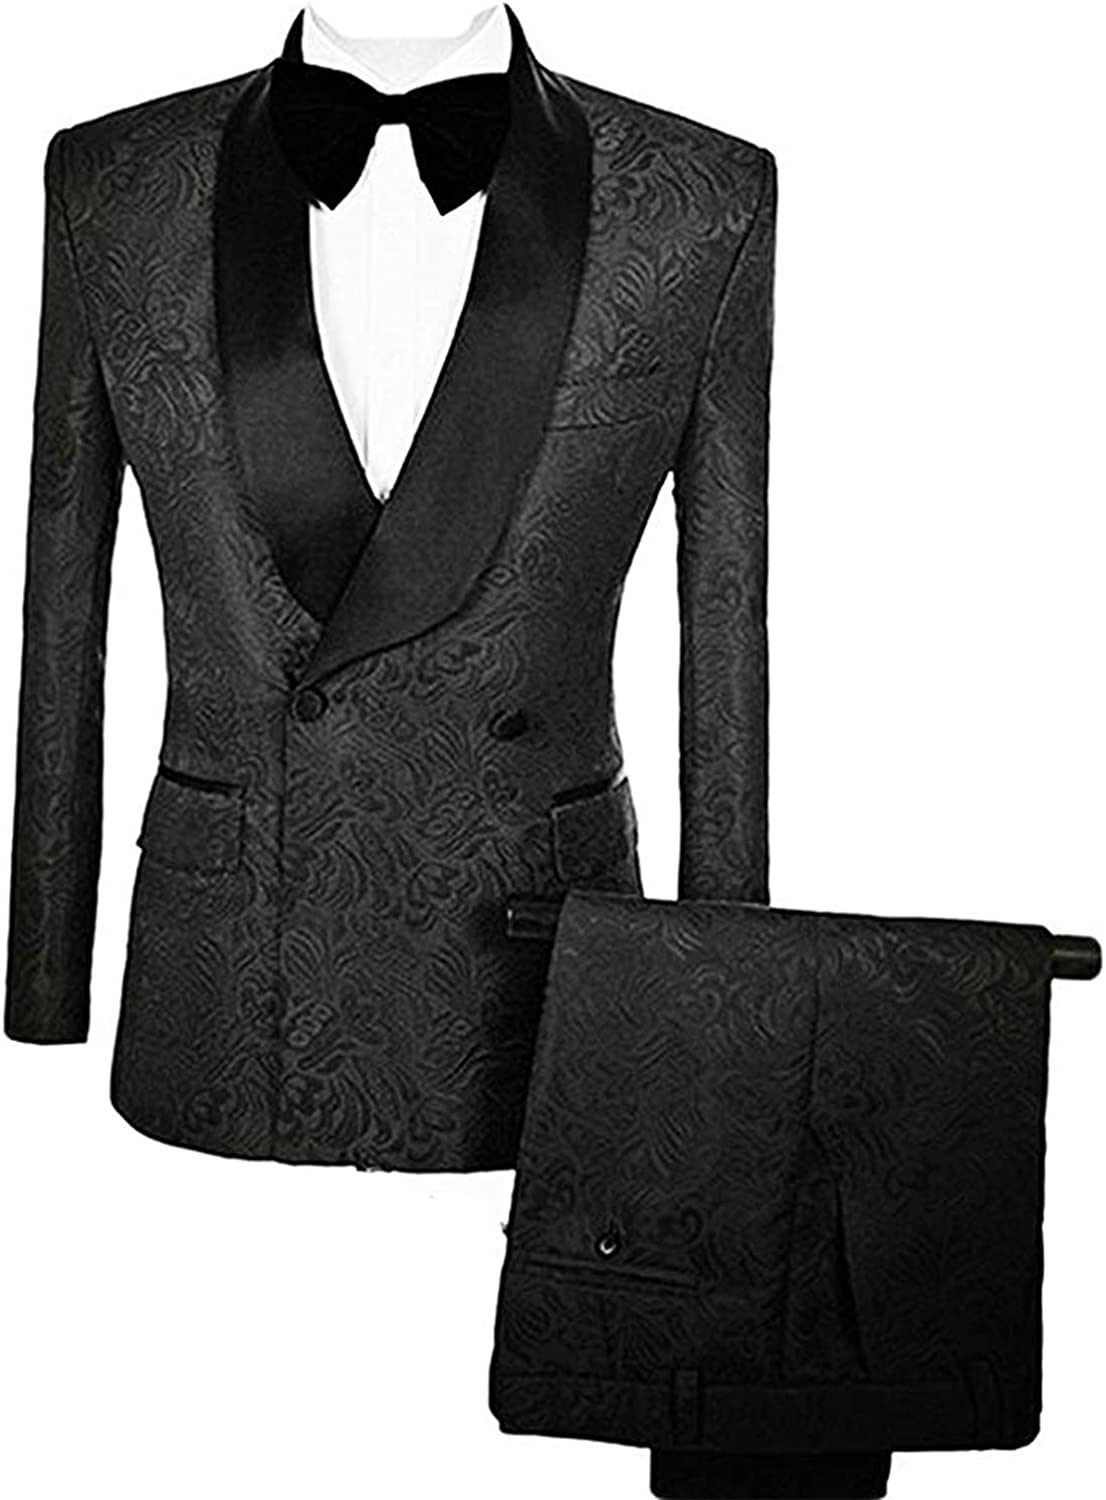 Frank Men's Suit Double Breasted Jacquard Groom Tuxedos Shawl Lapel Wedding Suit